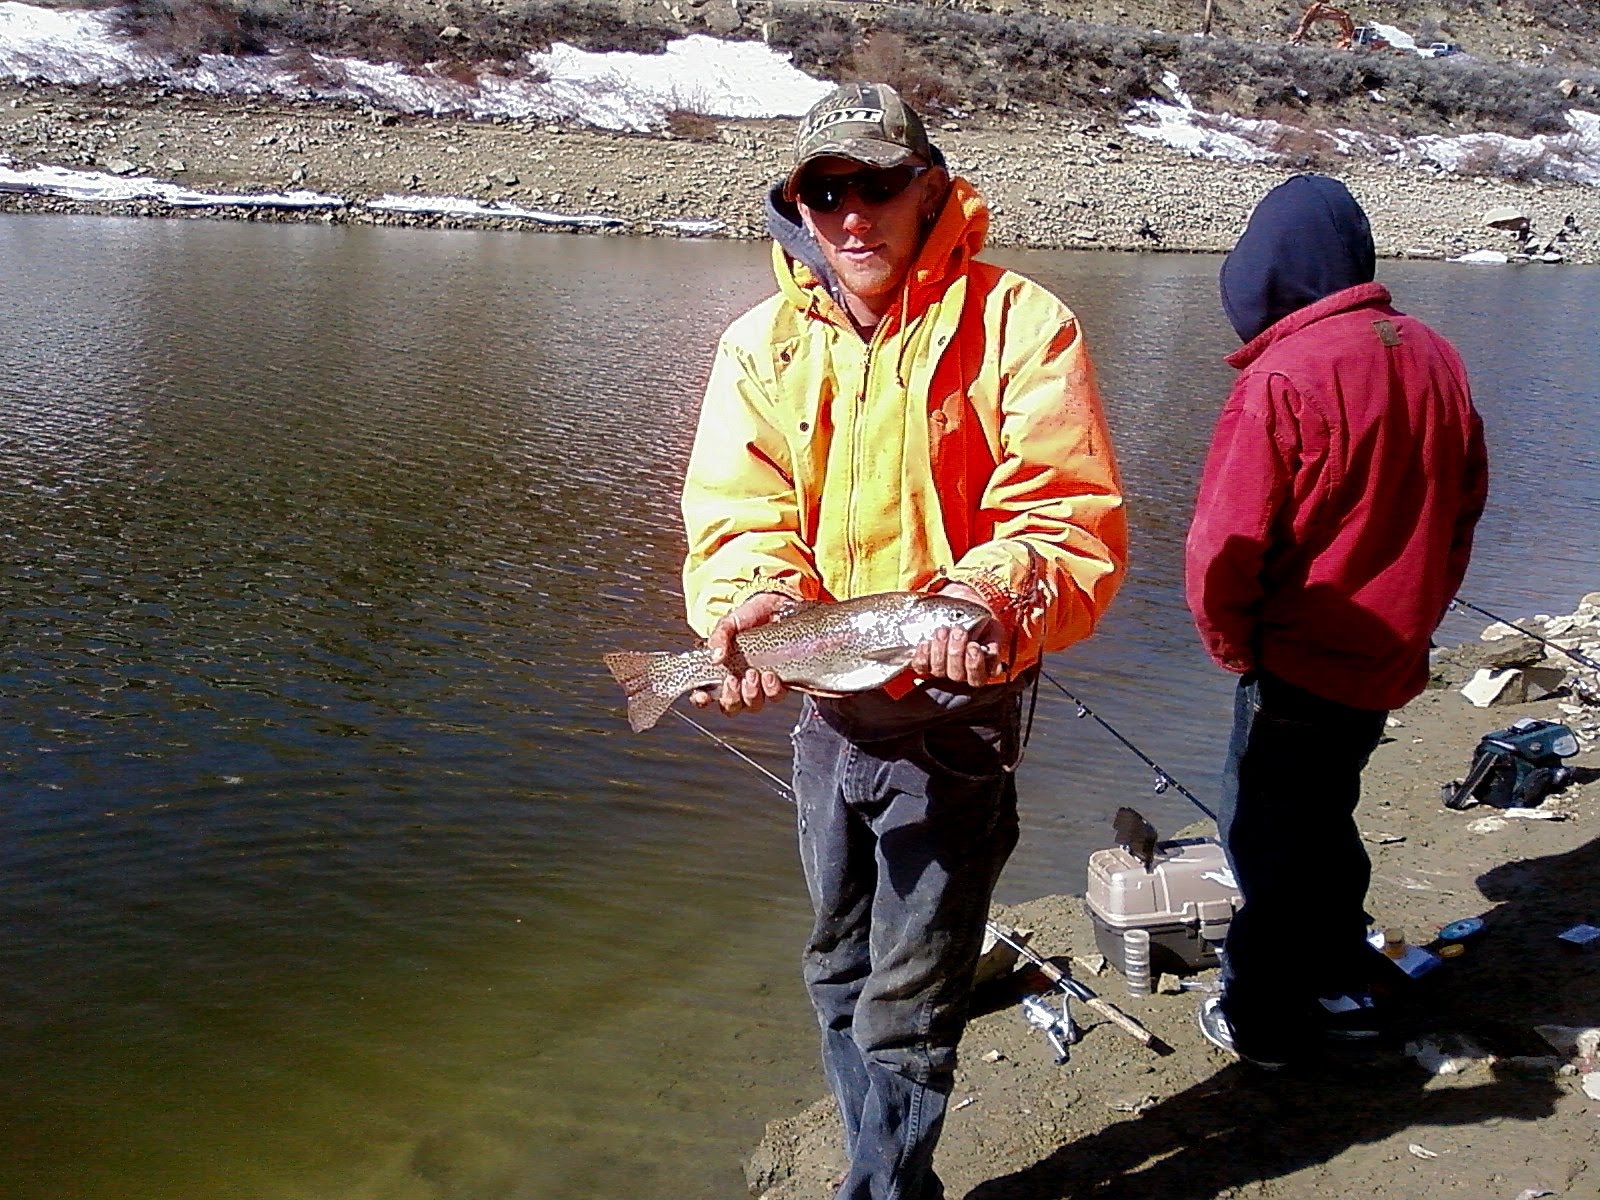 ice fishing lawn chair pottery barn manhattan melting hot at scofield reservoir backcountry utah that will keep your kids excited and you pulling fish out of the water from comfort is about to begin